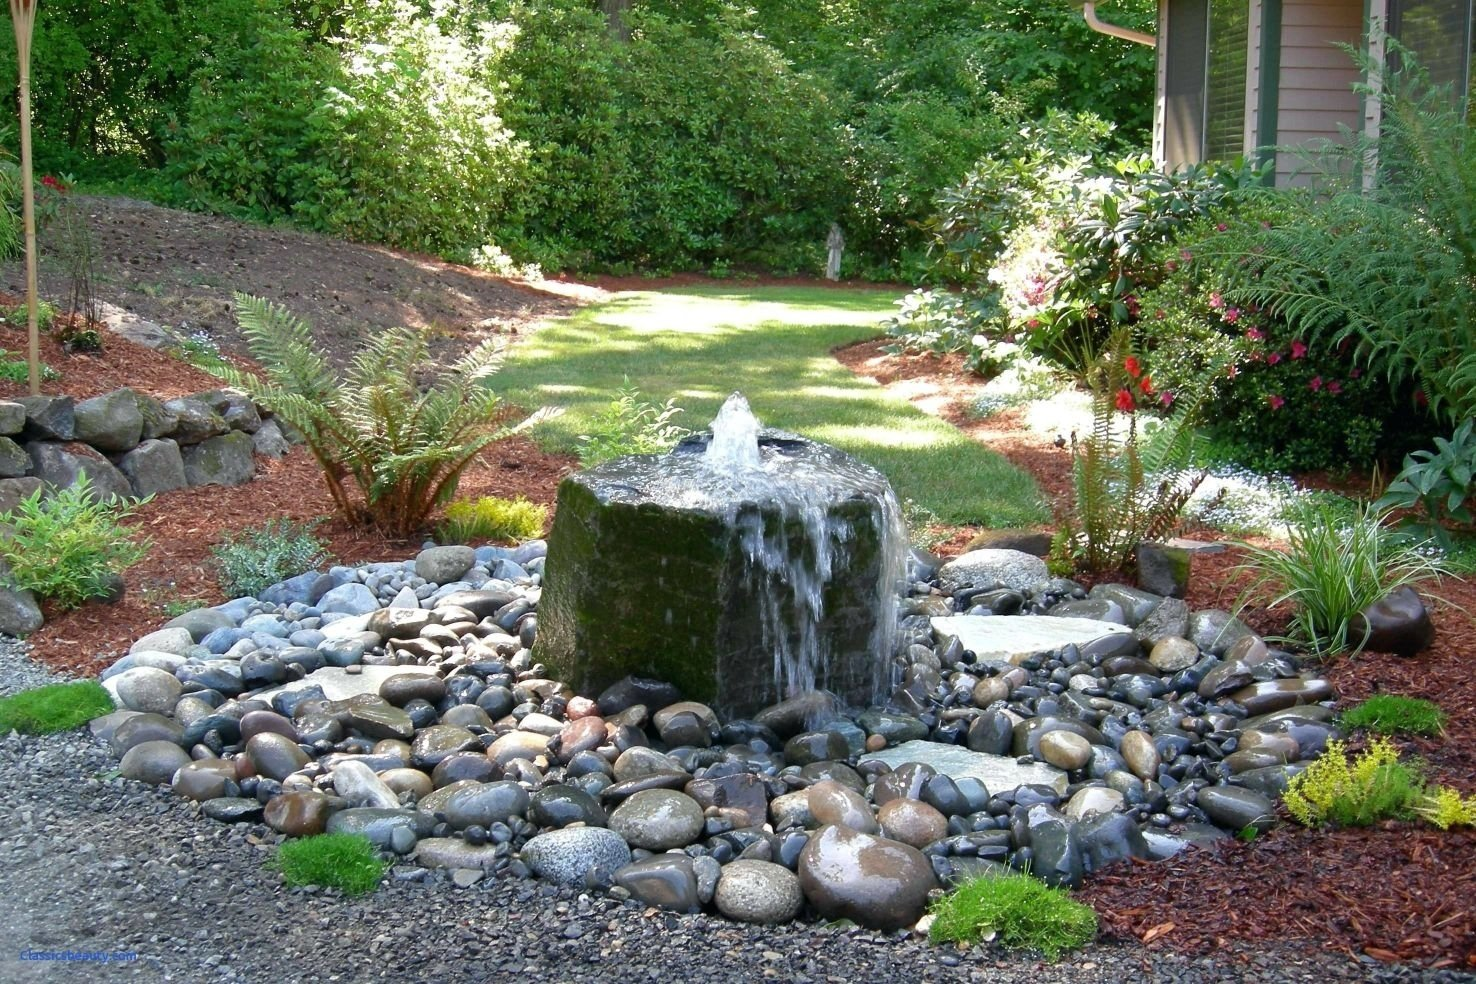 10 Perfect Water Feature Ideas For Small Gardens astonishing garden feature ideas small backyard water pics of for 2020